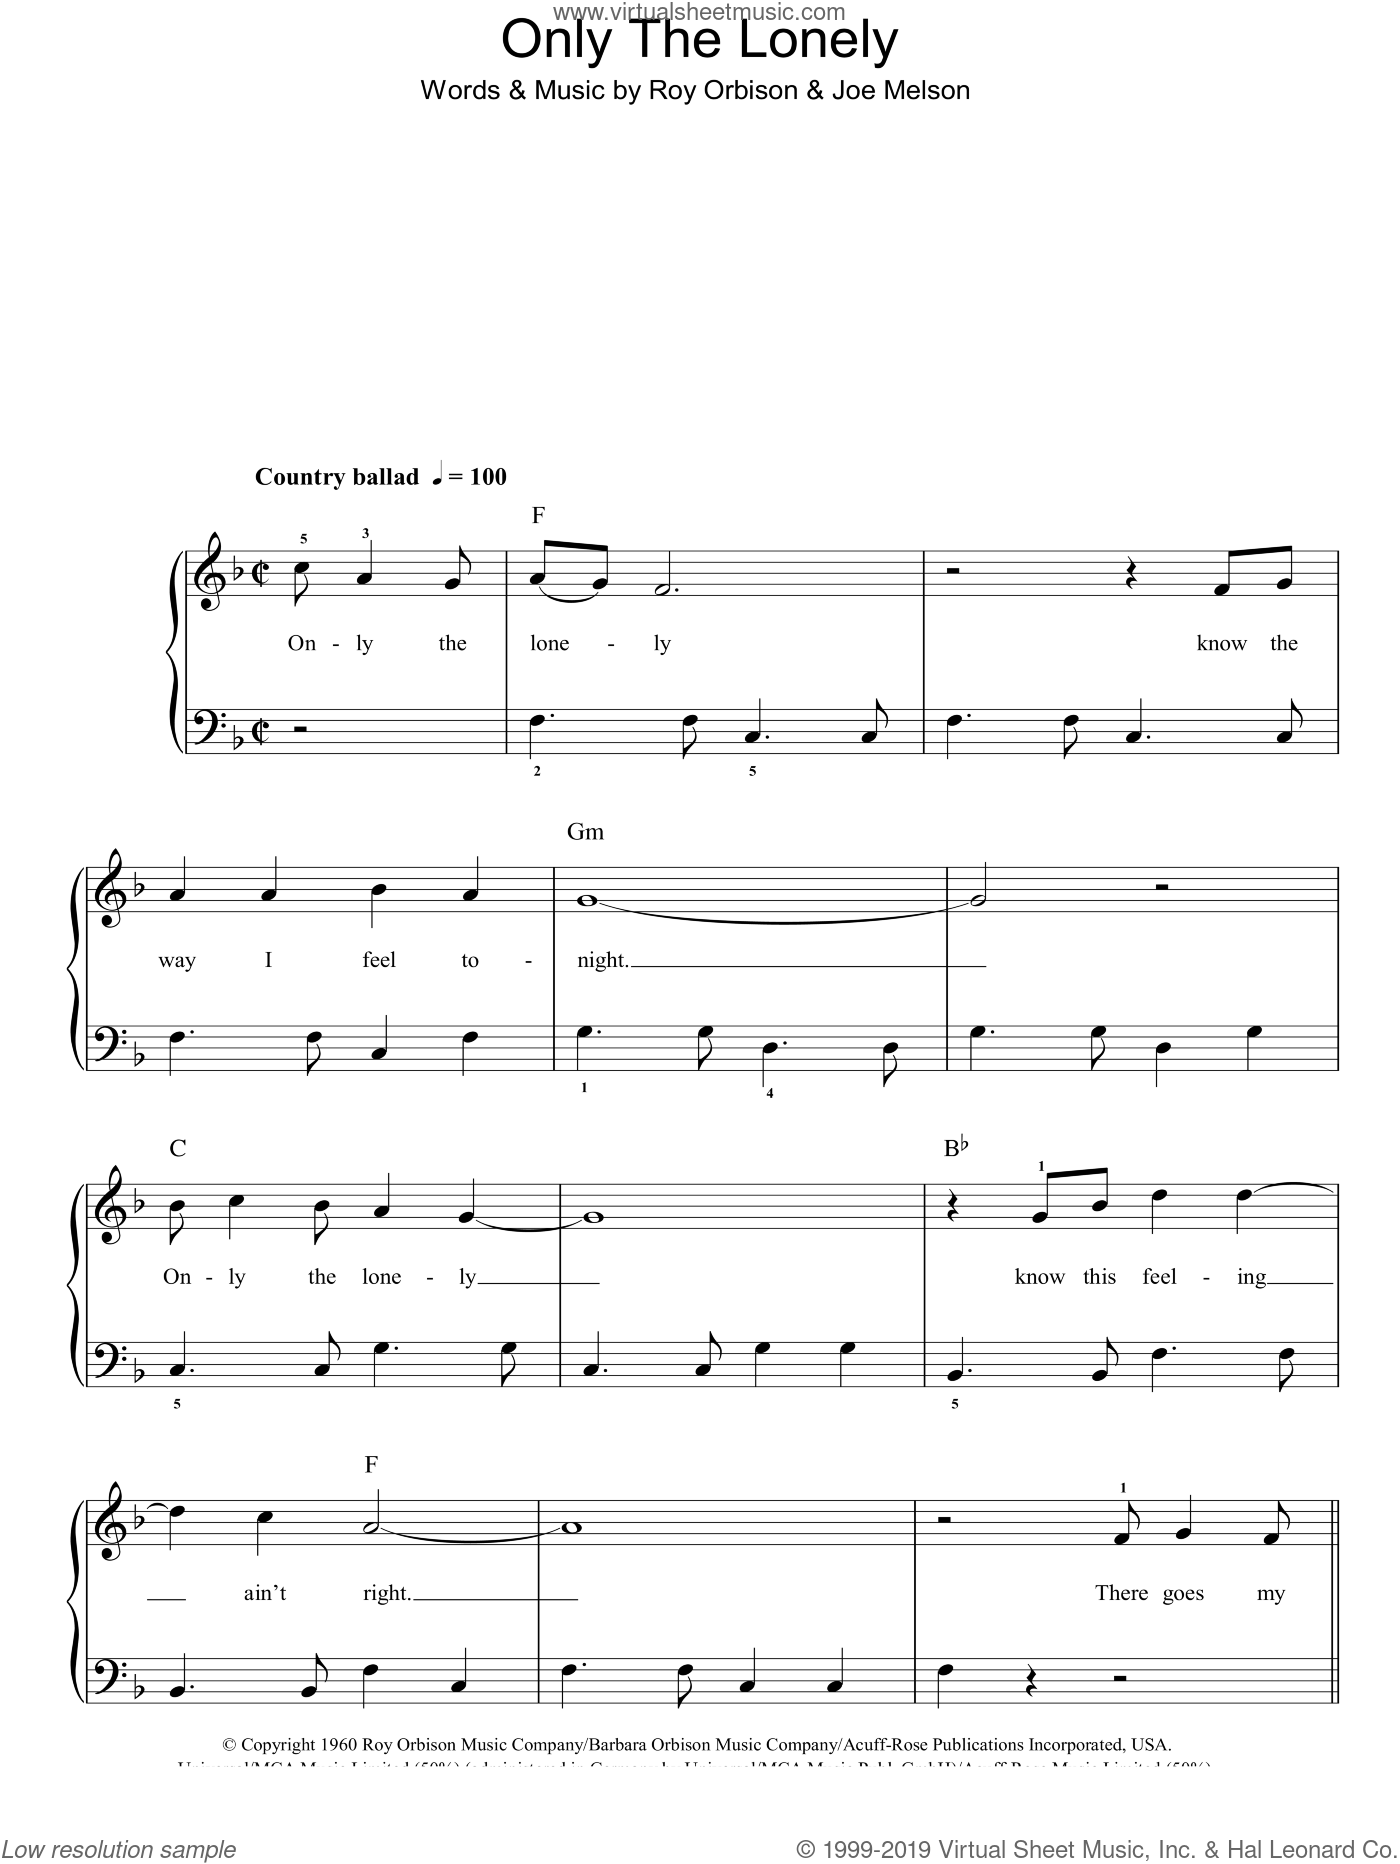 Only The Lonely sheet music for piano solo (chords) by Joe Melson